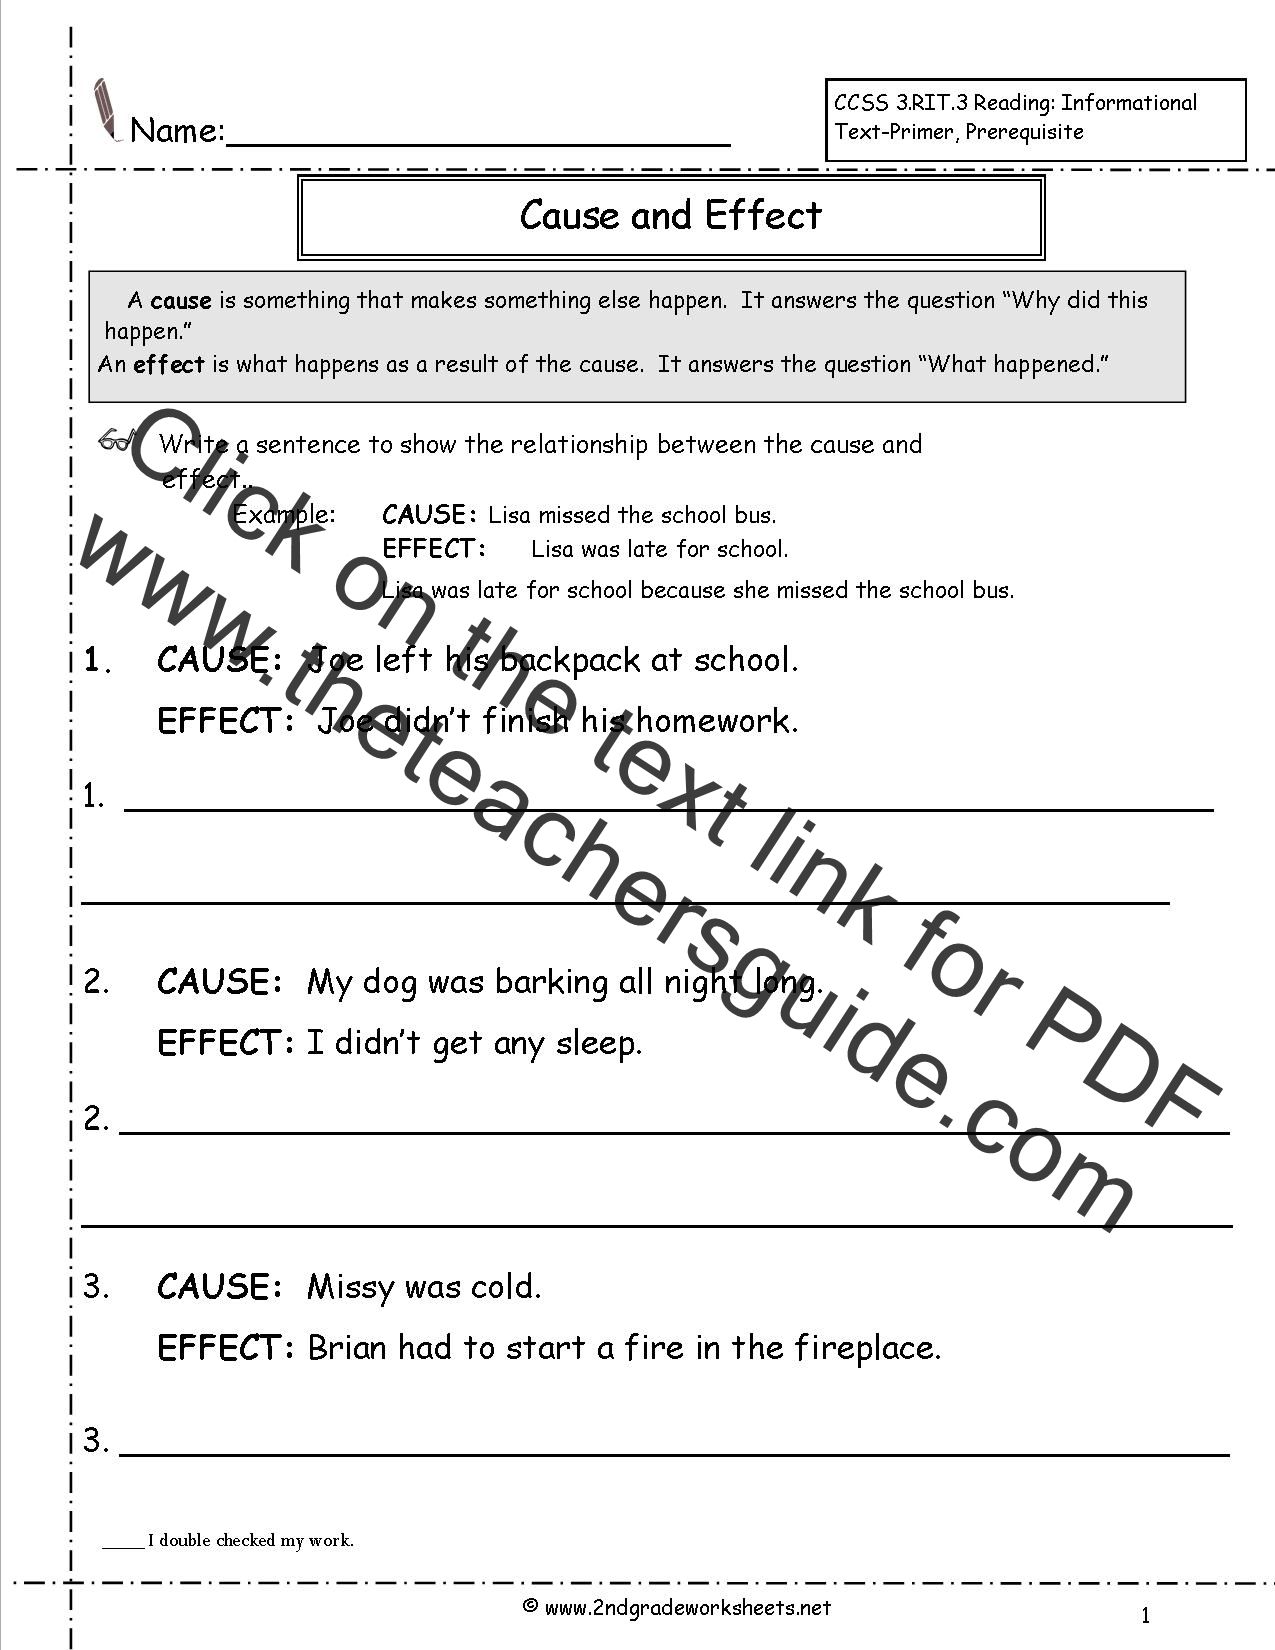 Worksheet Reading Comprehension For Second Grade reading worksheeets worksheets